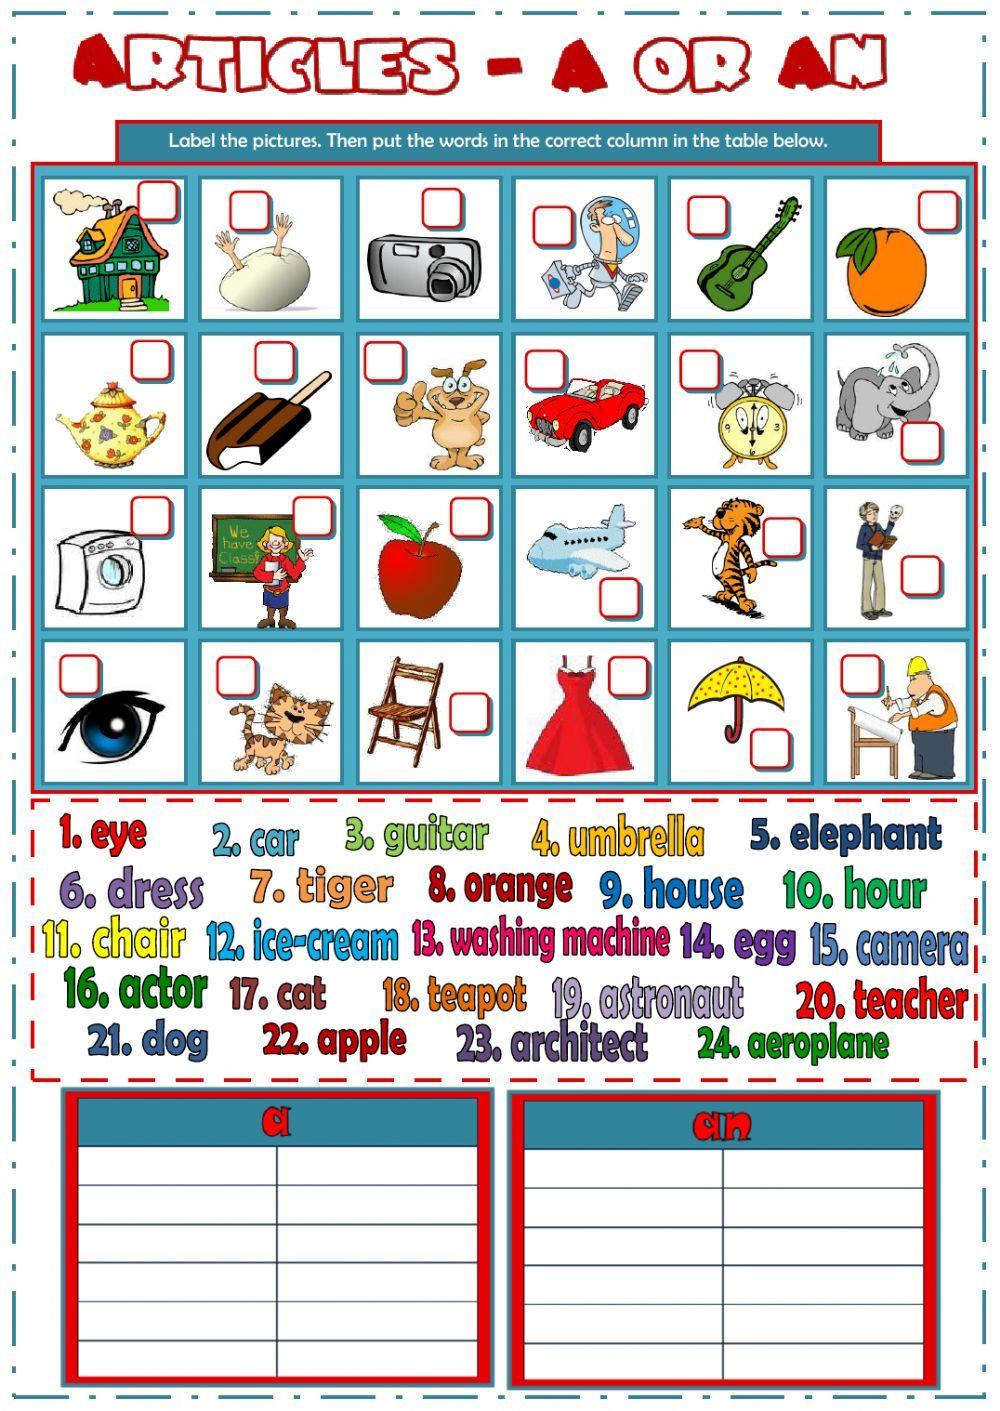 The indefinite articles interactive and downloadable worksheet. You ...